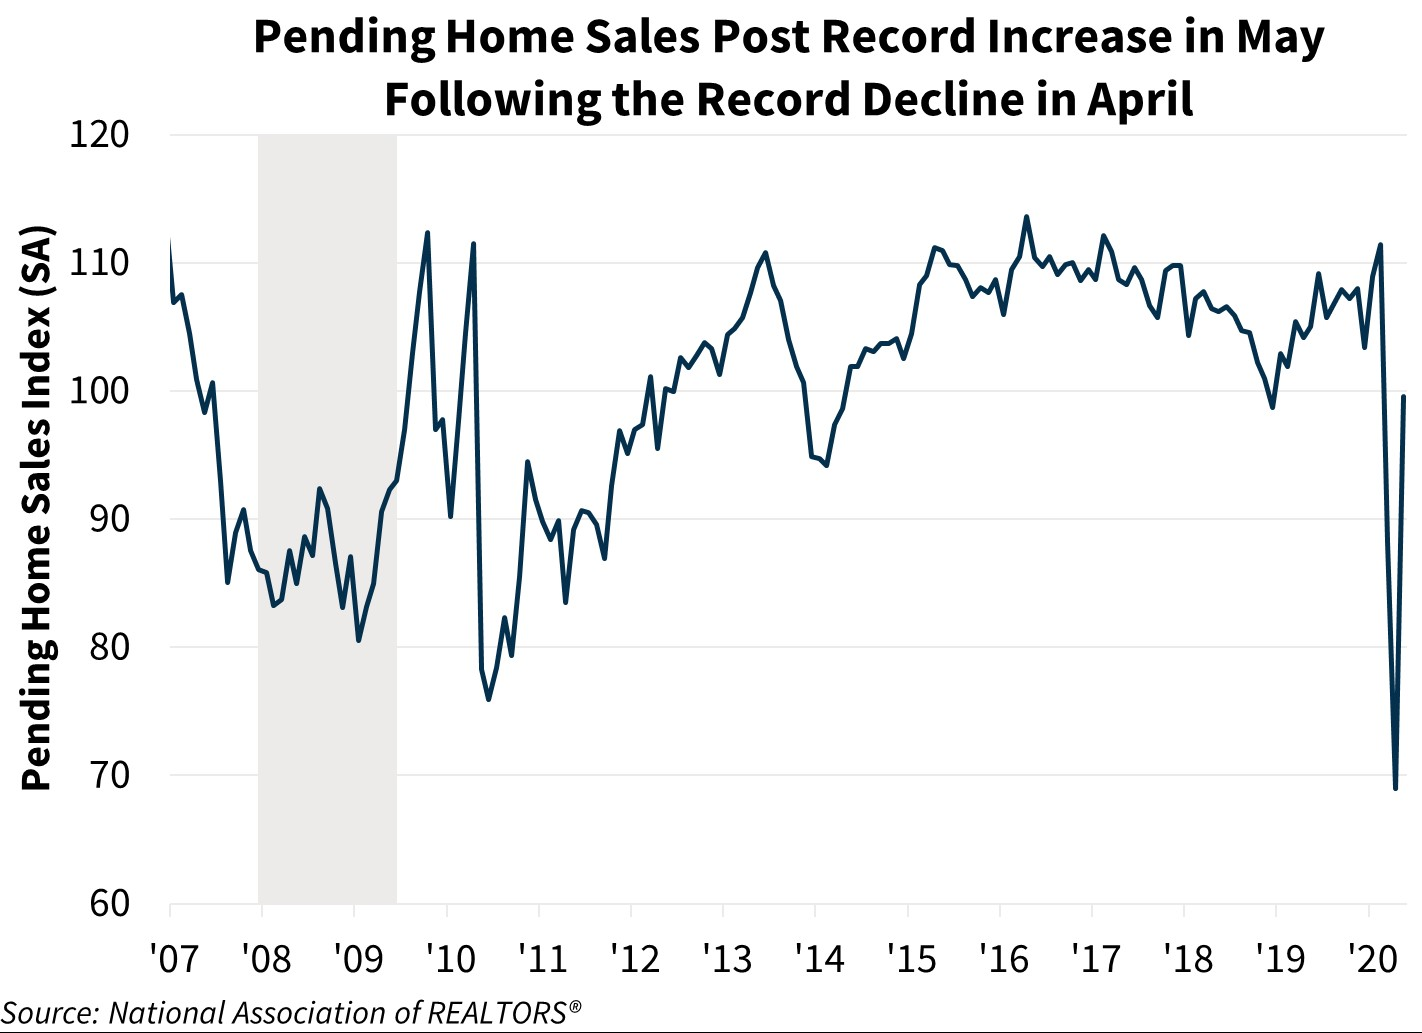 Pending Home Sales Post Record Increase in May Following the Record Decline in April